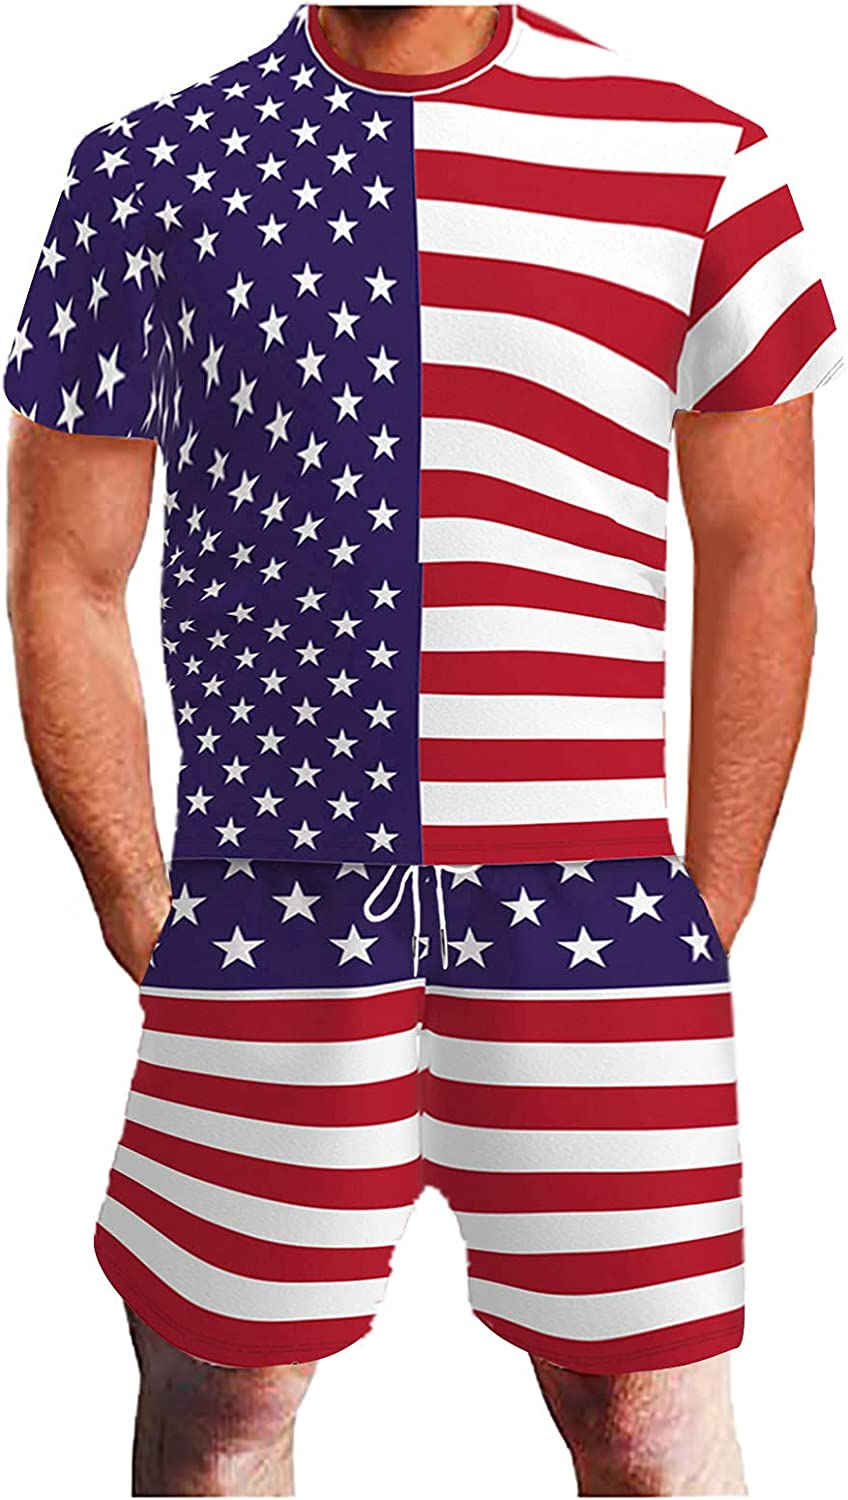 Beshion 4th of July American Flag Mens Rompers Jumpsuits Summer Bib Overalls Denim Shorts Jean Casual Workout Beach Jumpsuit